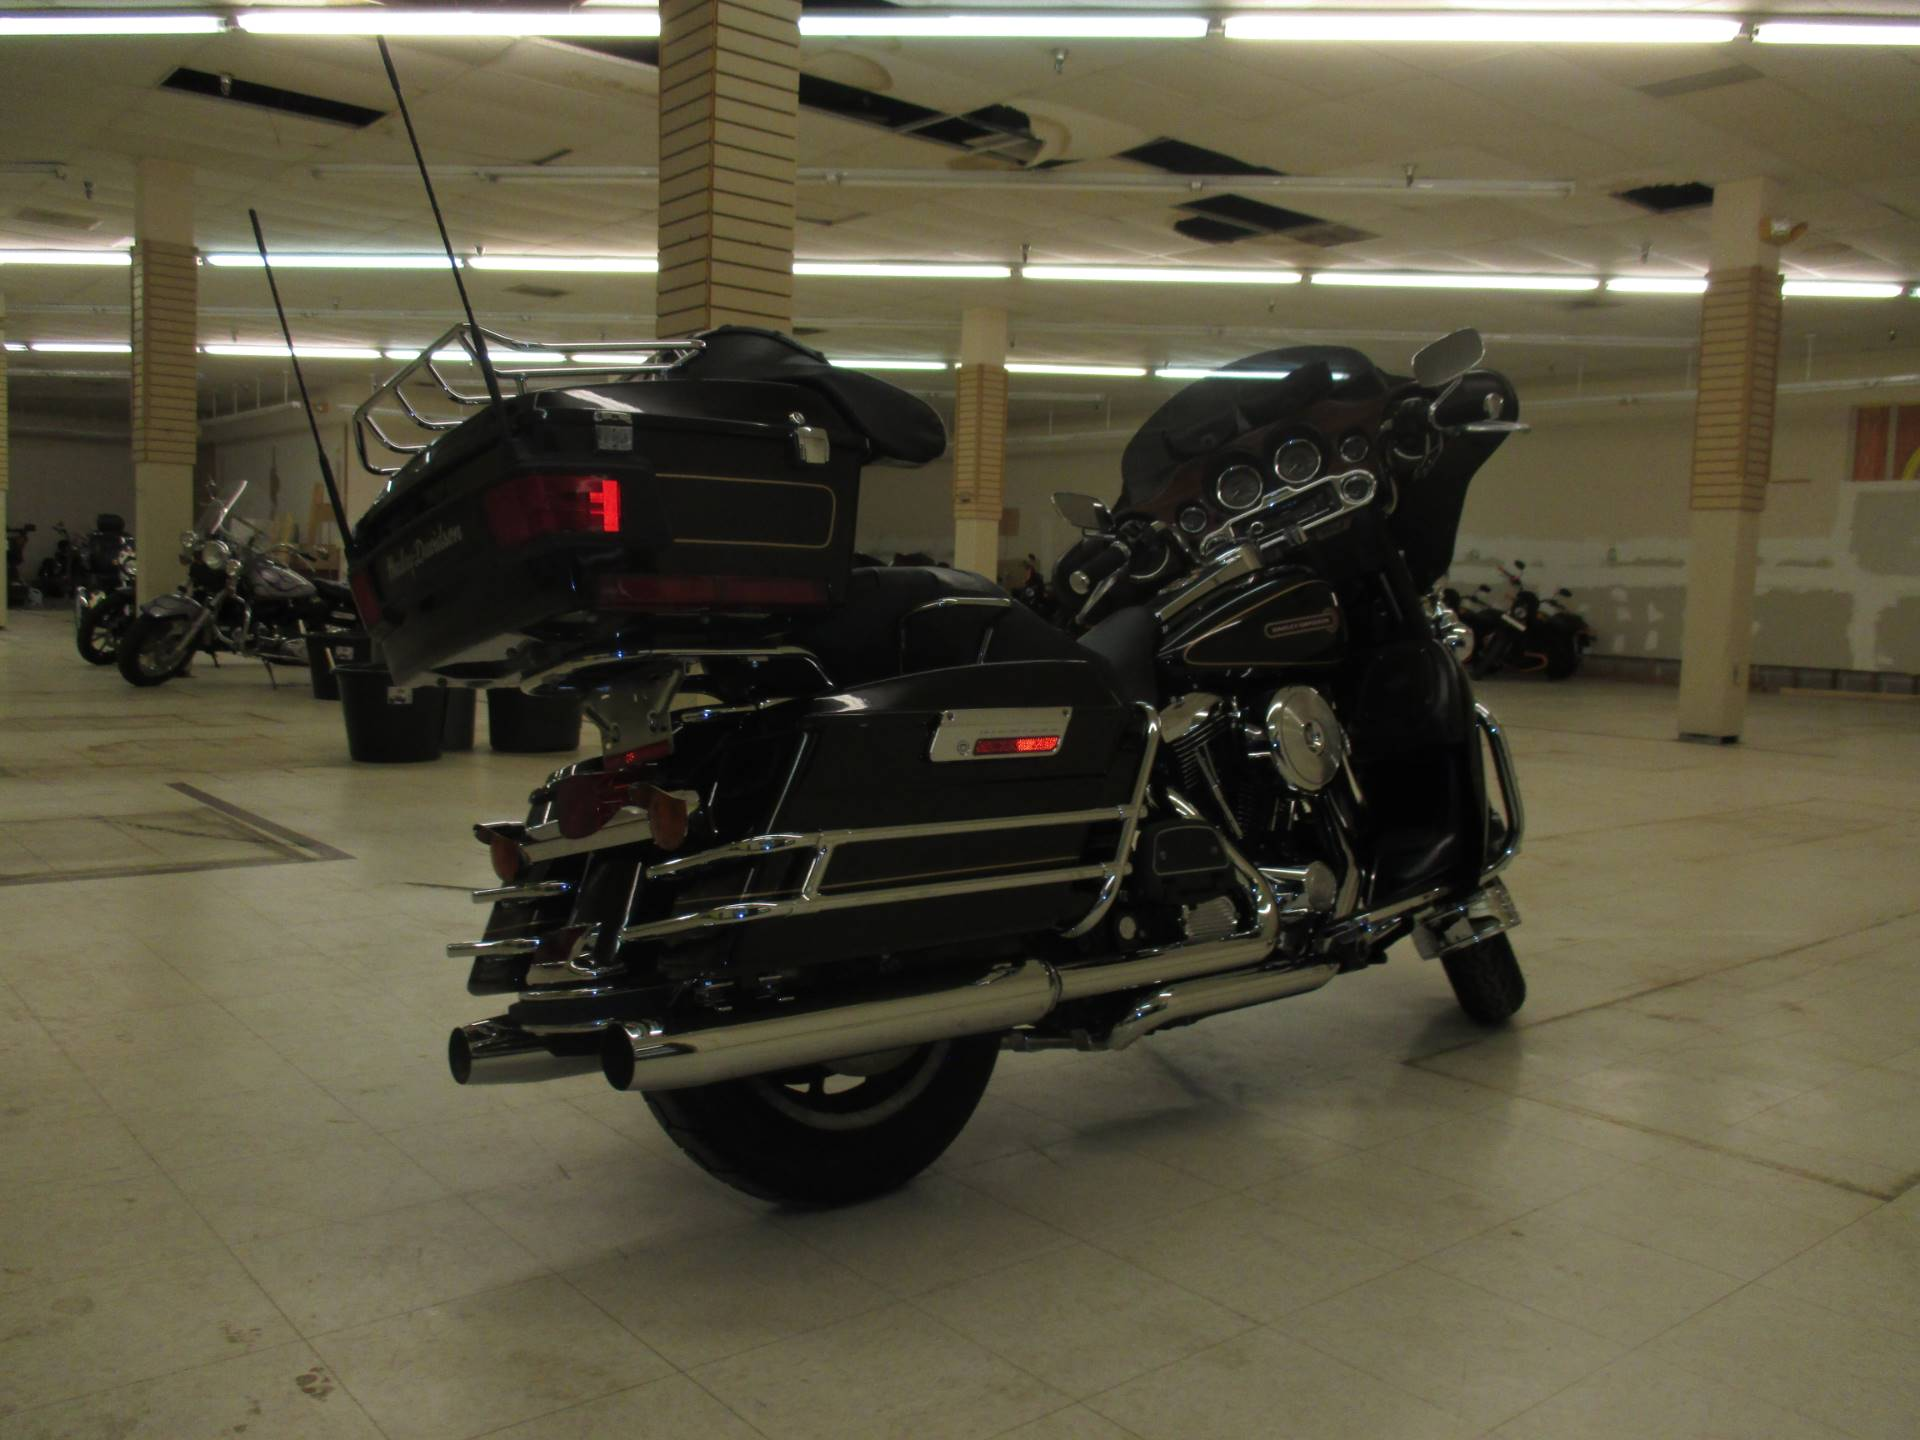 1998 Harley-Davidson FLHTC in Marquette, Michigan